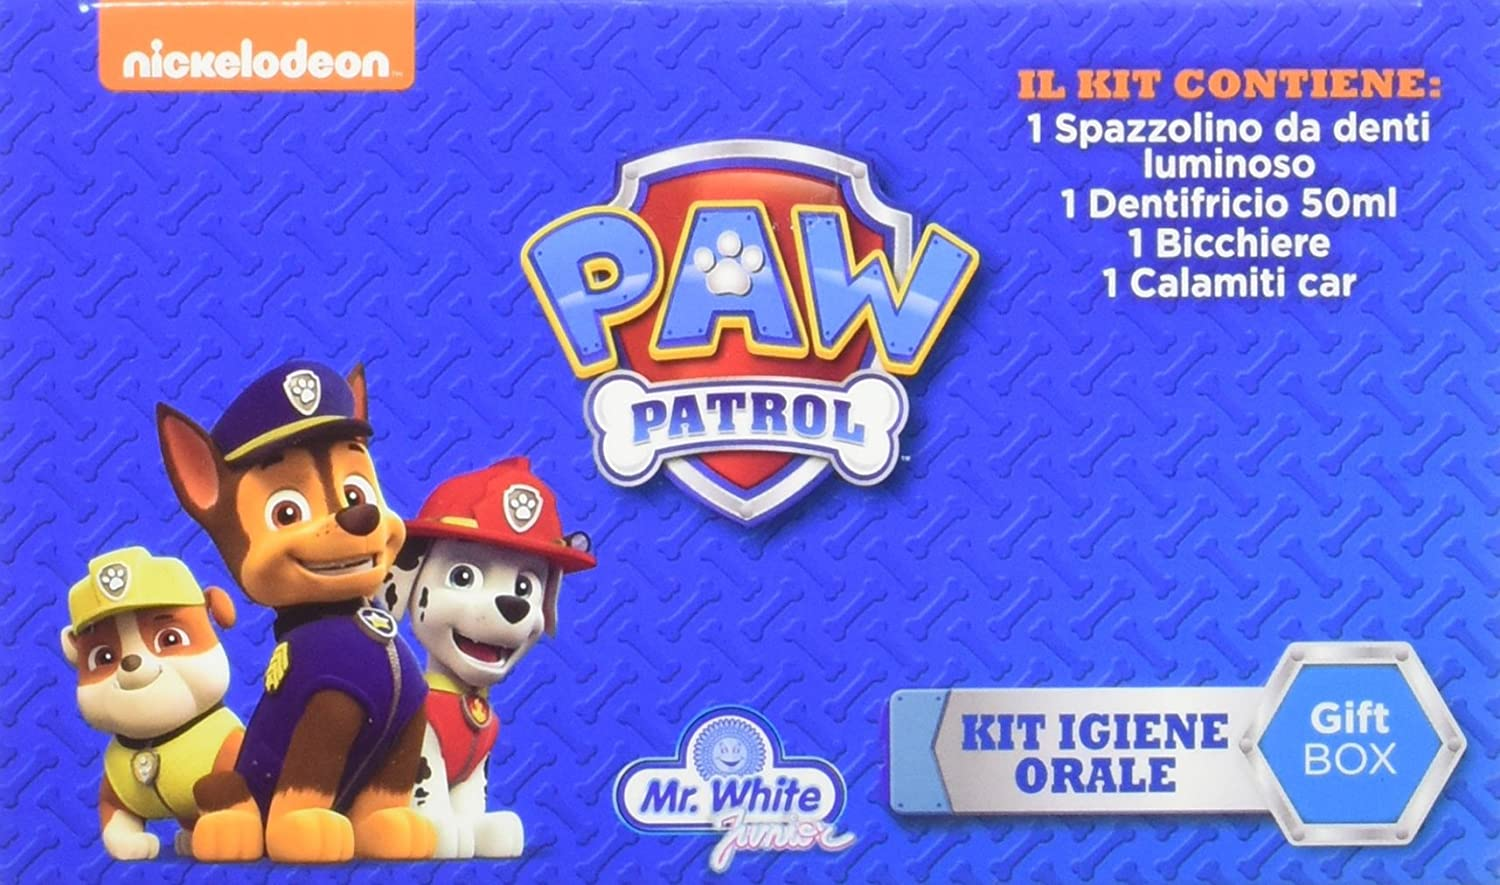 Amazon.com: Mr White Jr-Pat Patrol Gift Set by Mr White Jr: Health & Personal Care